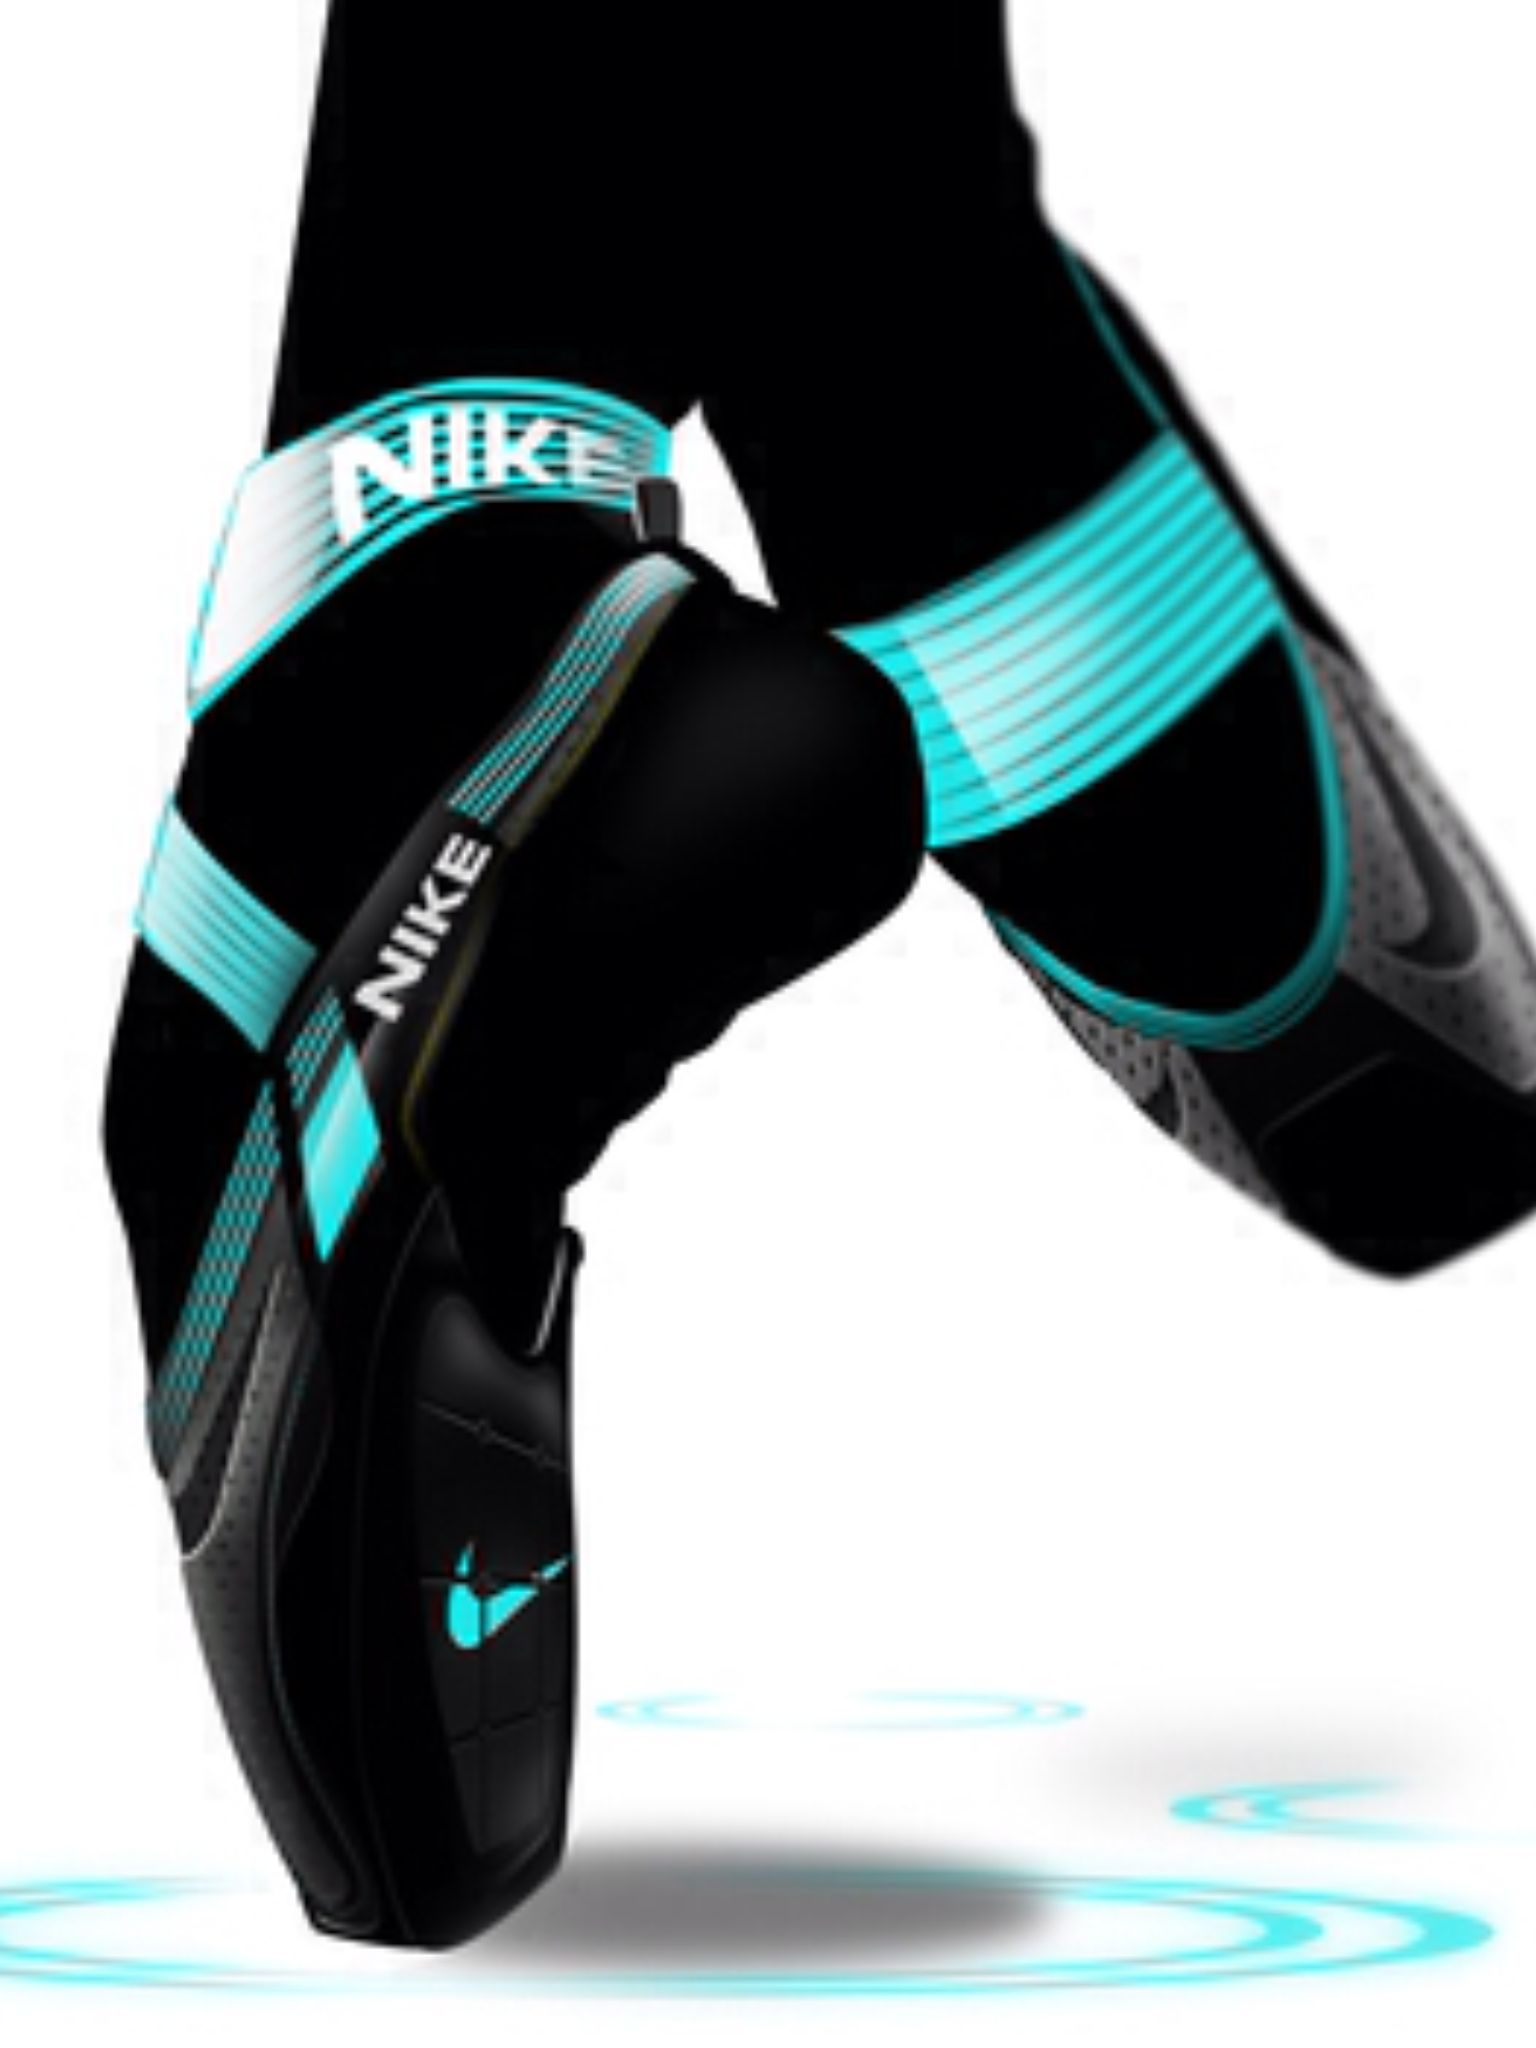 Pin Dobson On 2019Nike Pointe Pyper By In Shoes Point Y7ygbf6